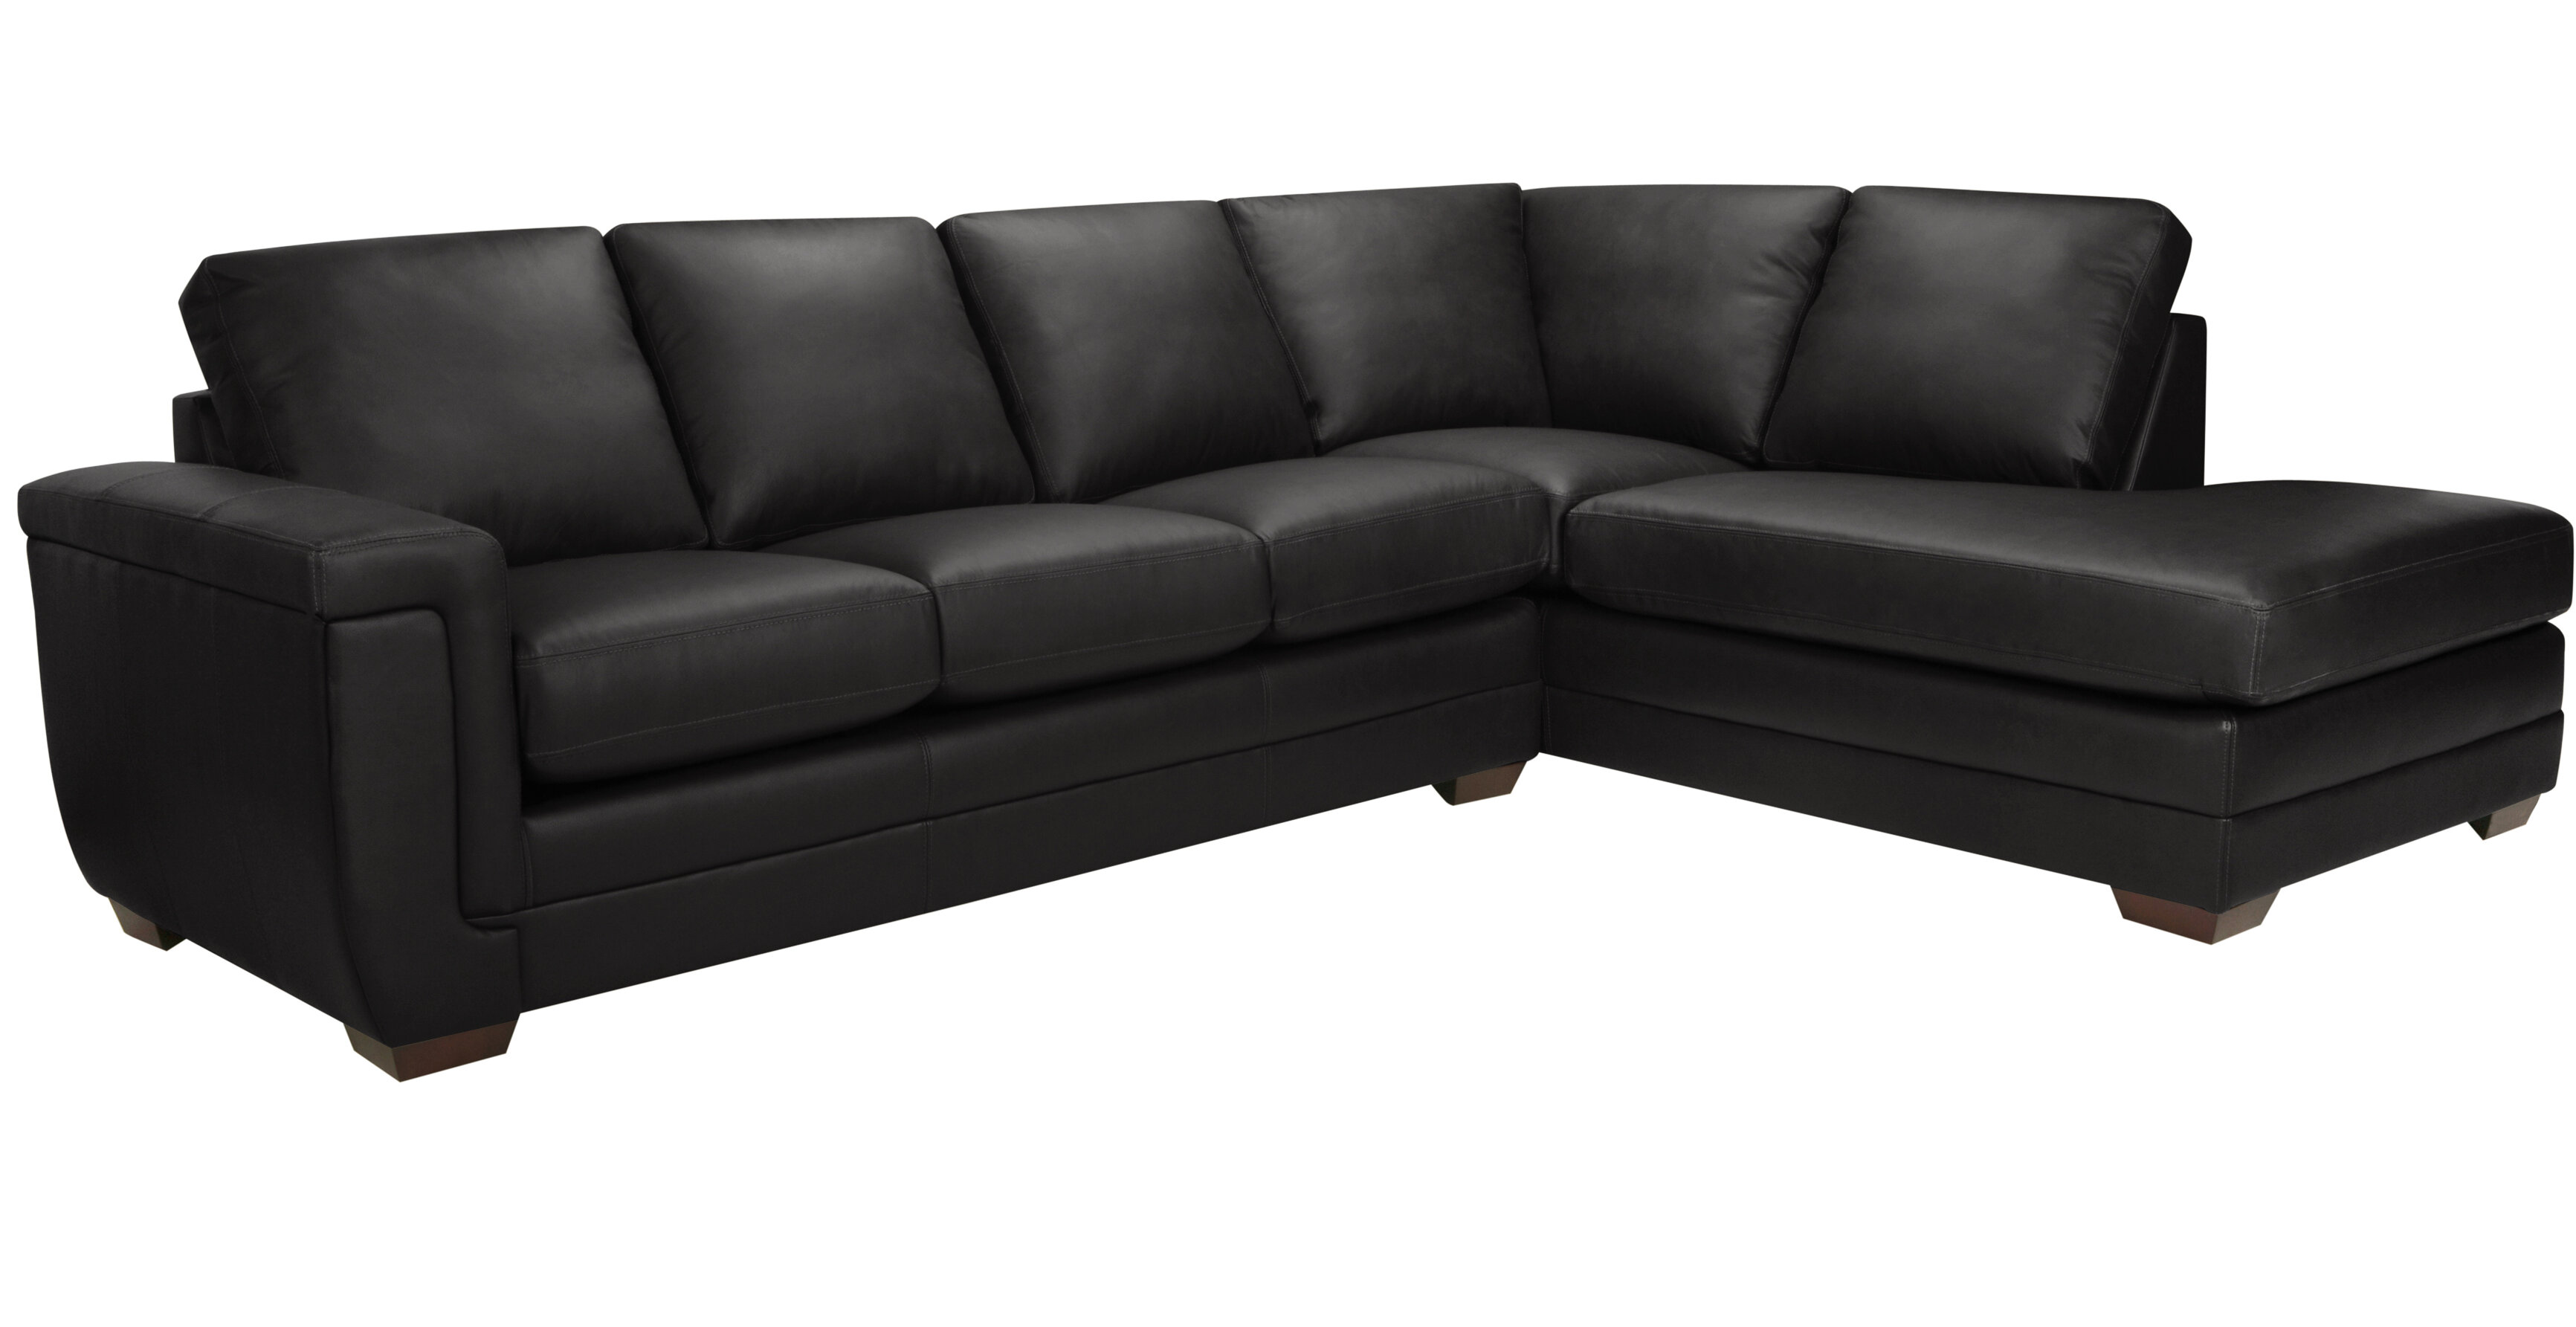 Gile Right Hand Facing Italian Leather Sectional